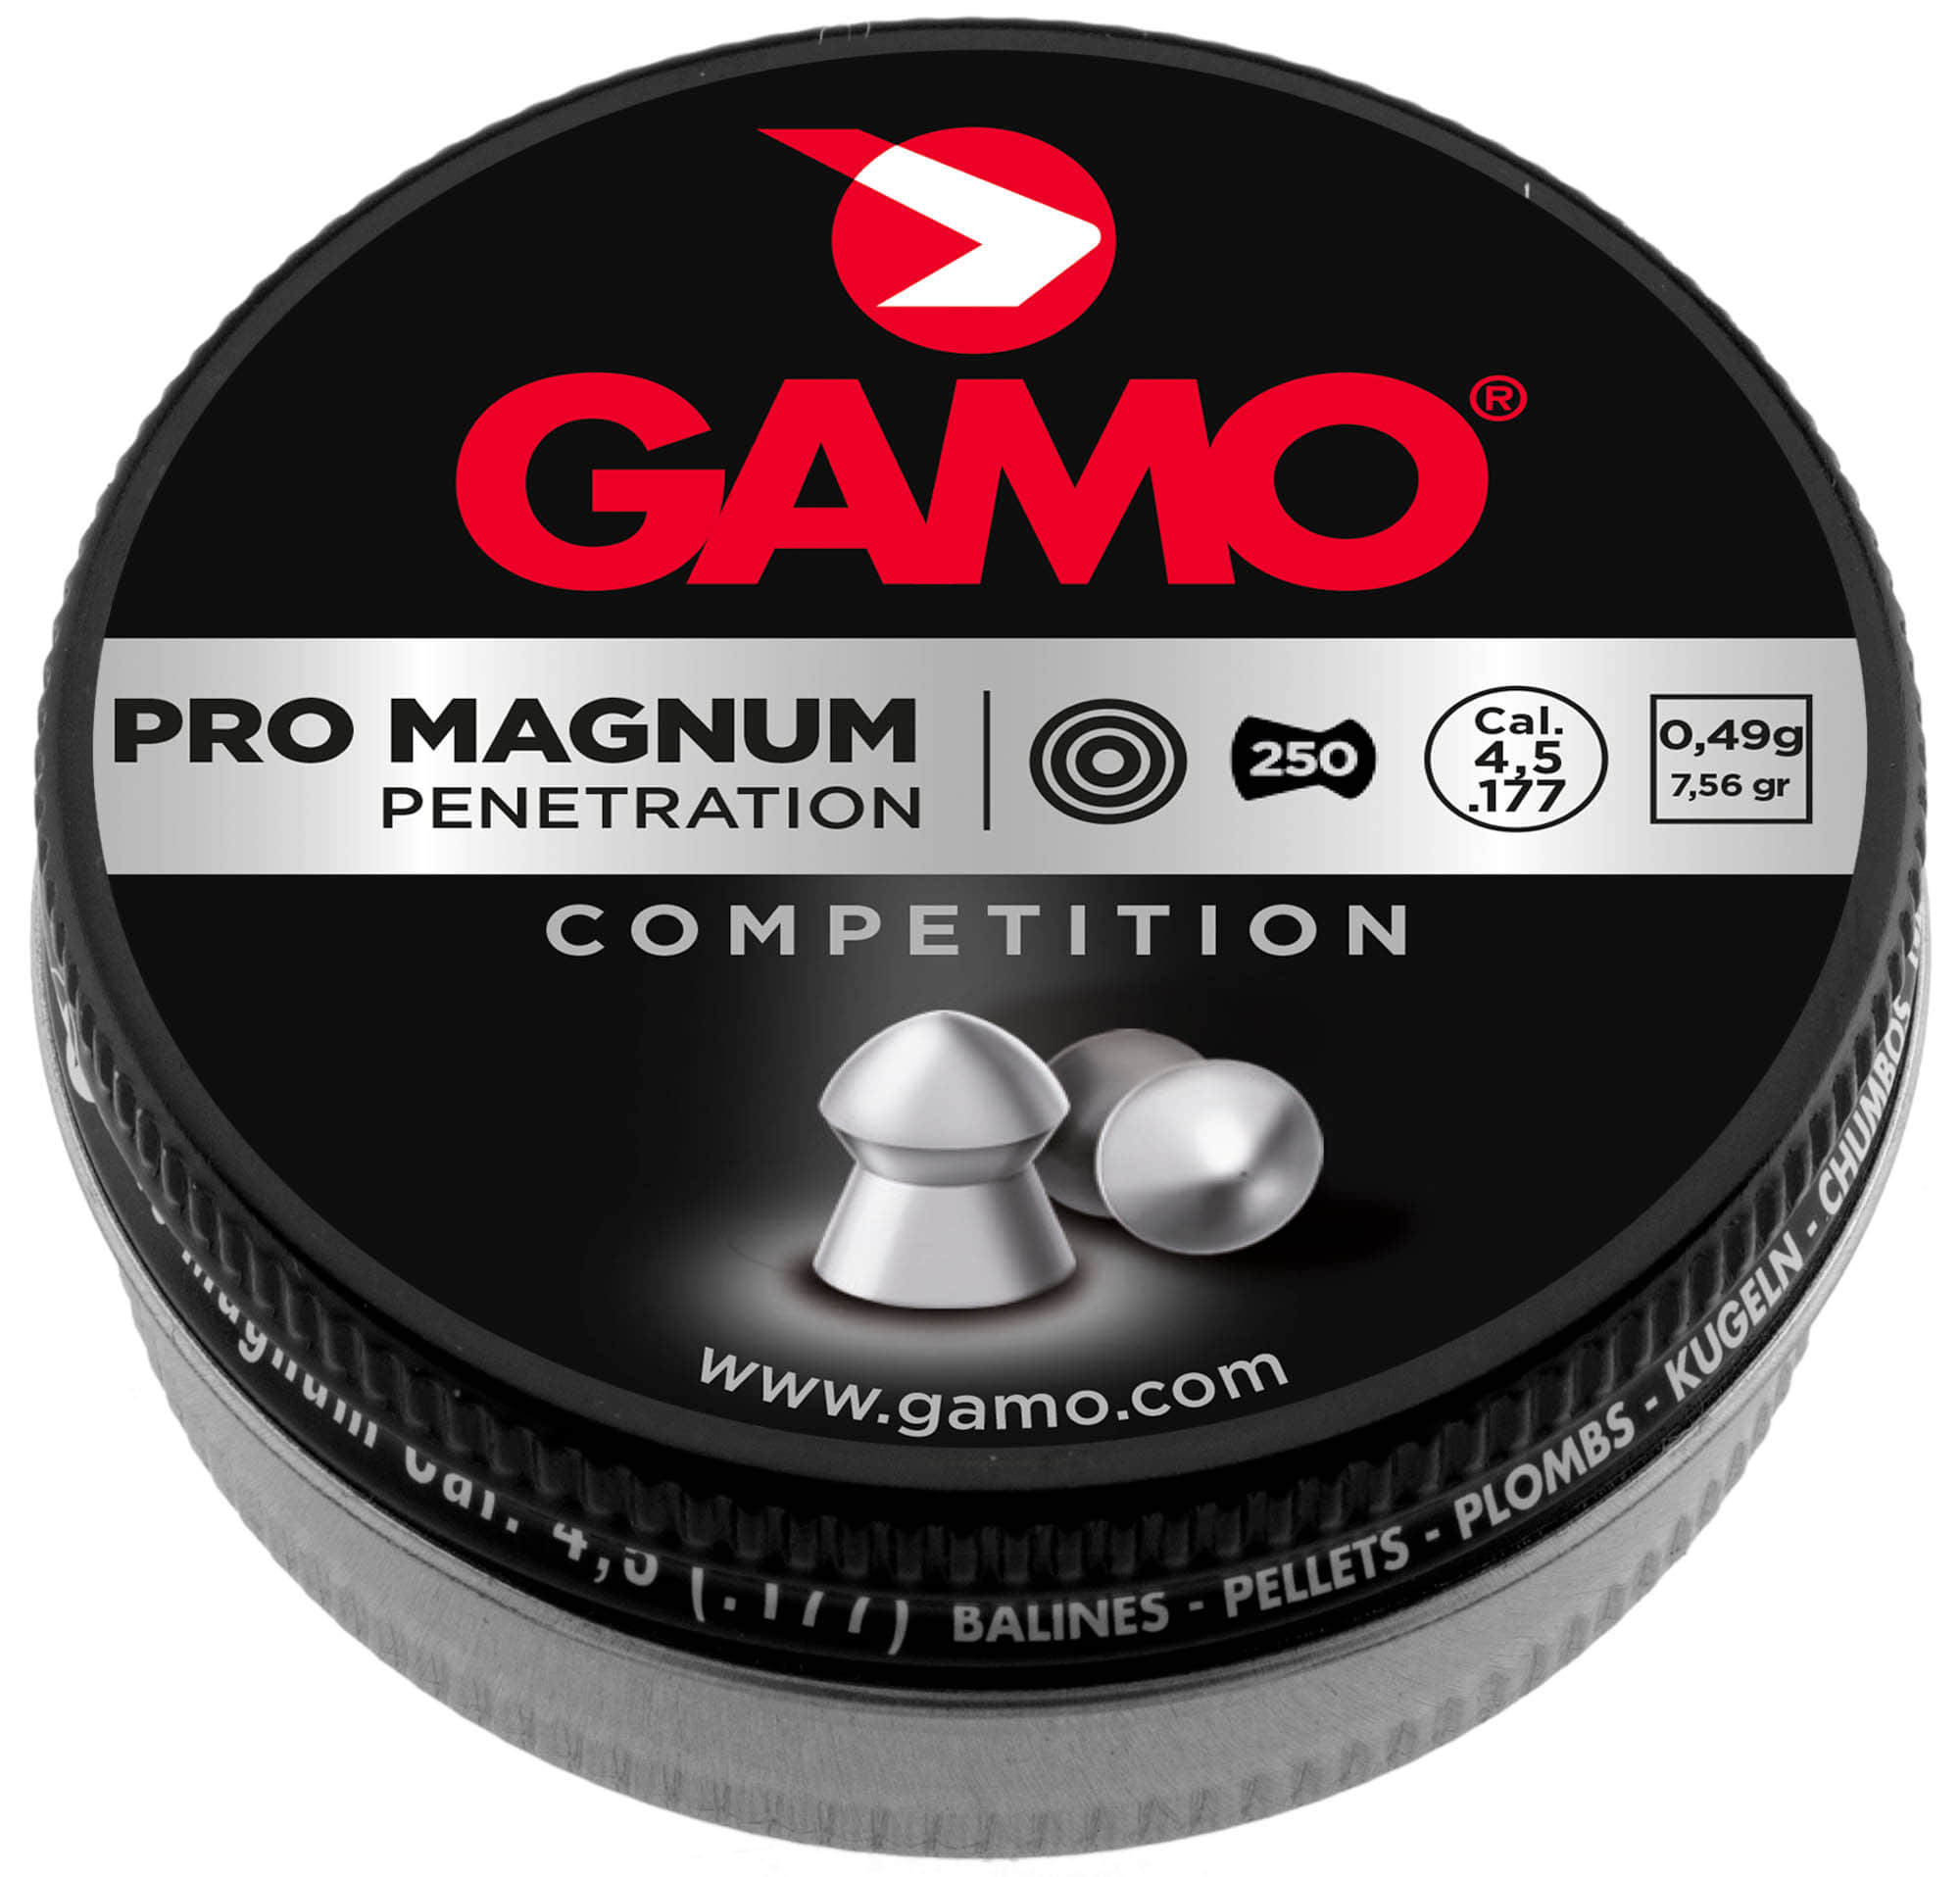 G3400-2-Plombs Match classic 5,5 mm - GAMO - G3400